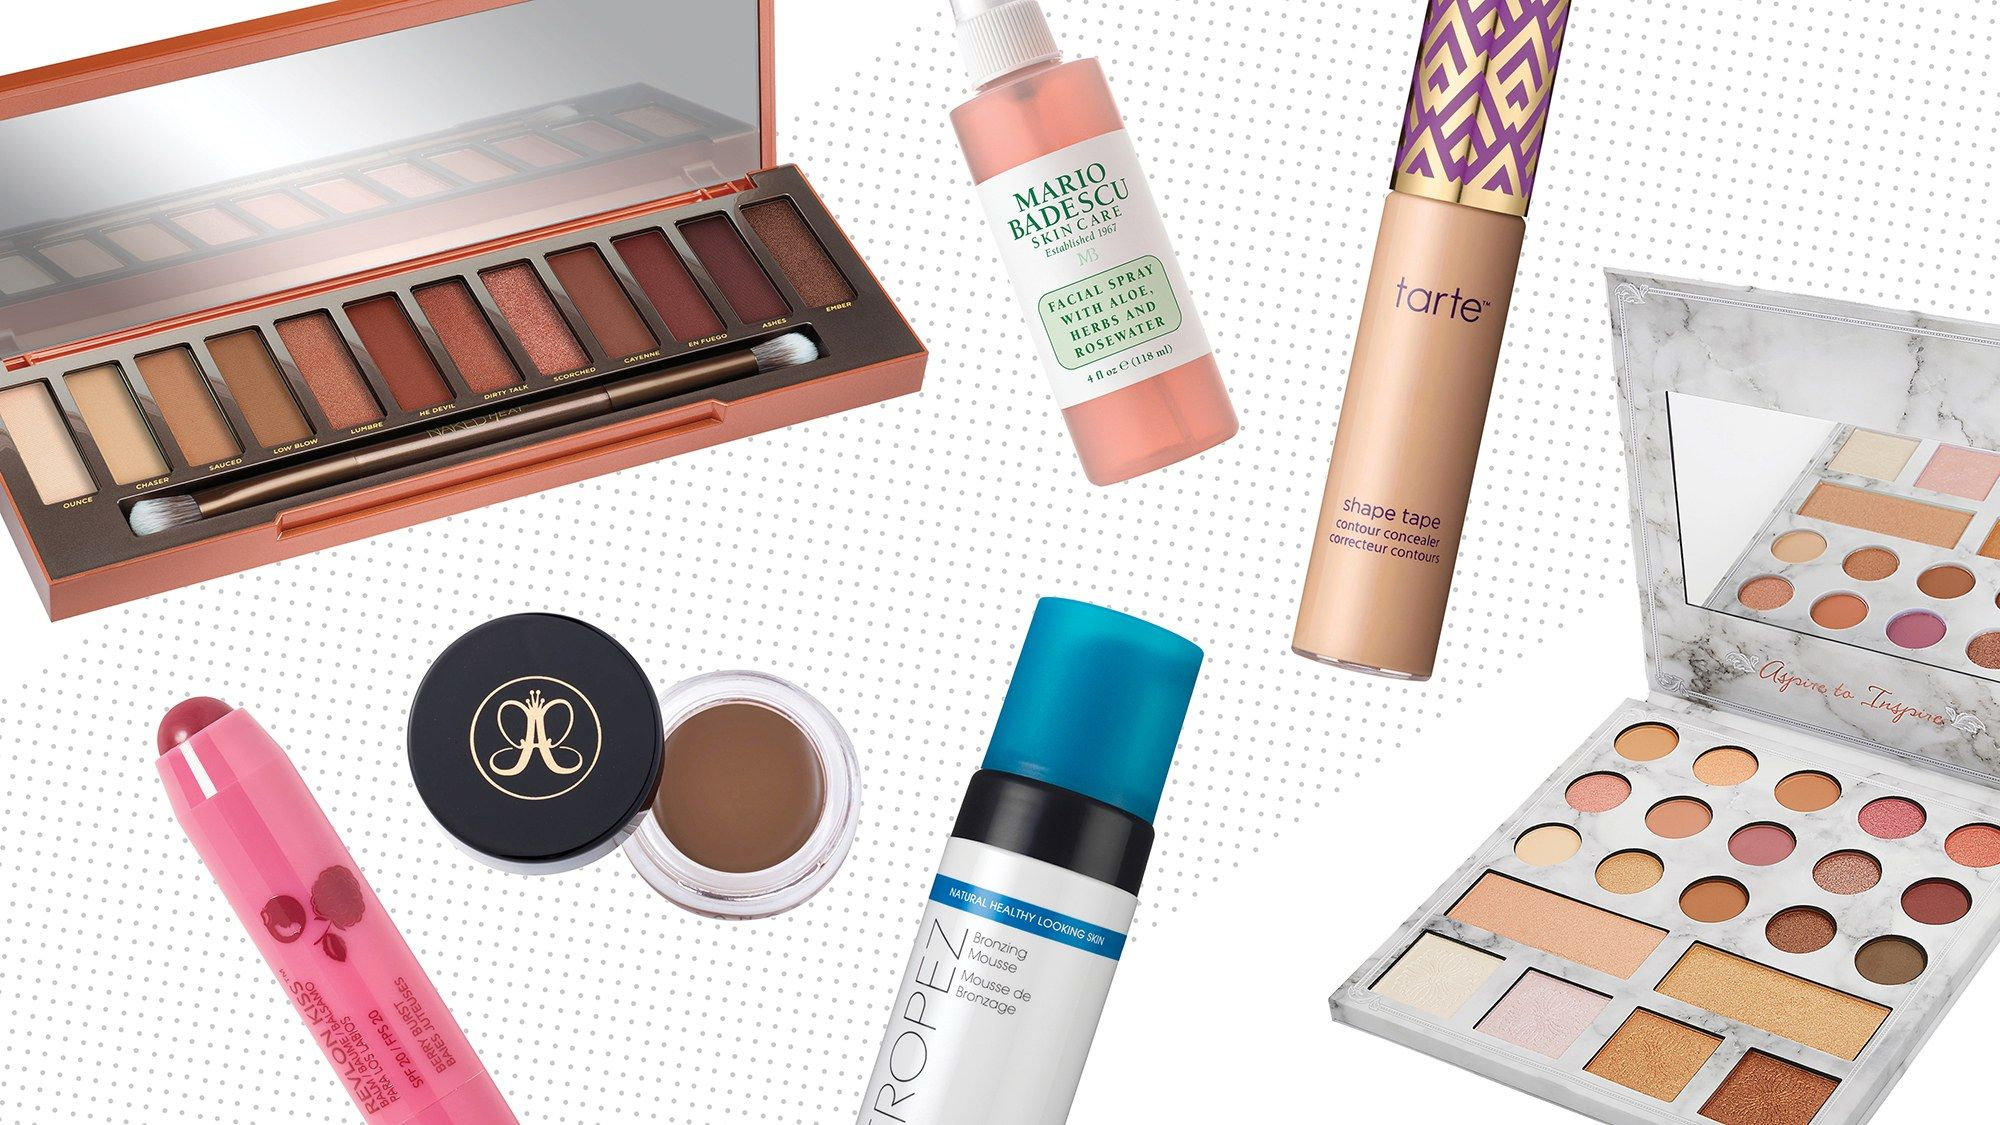 The 10 BestSelling Products at Ulta Beauty Last Month in